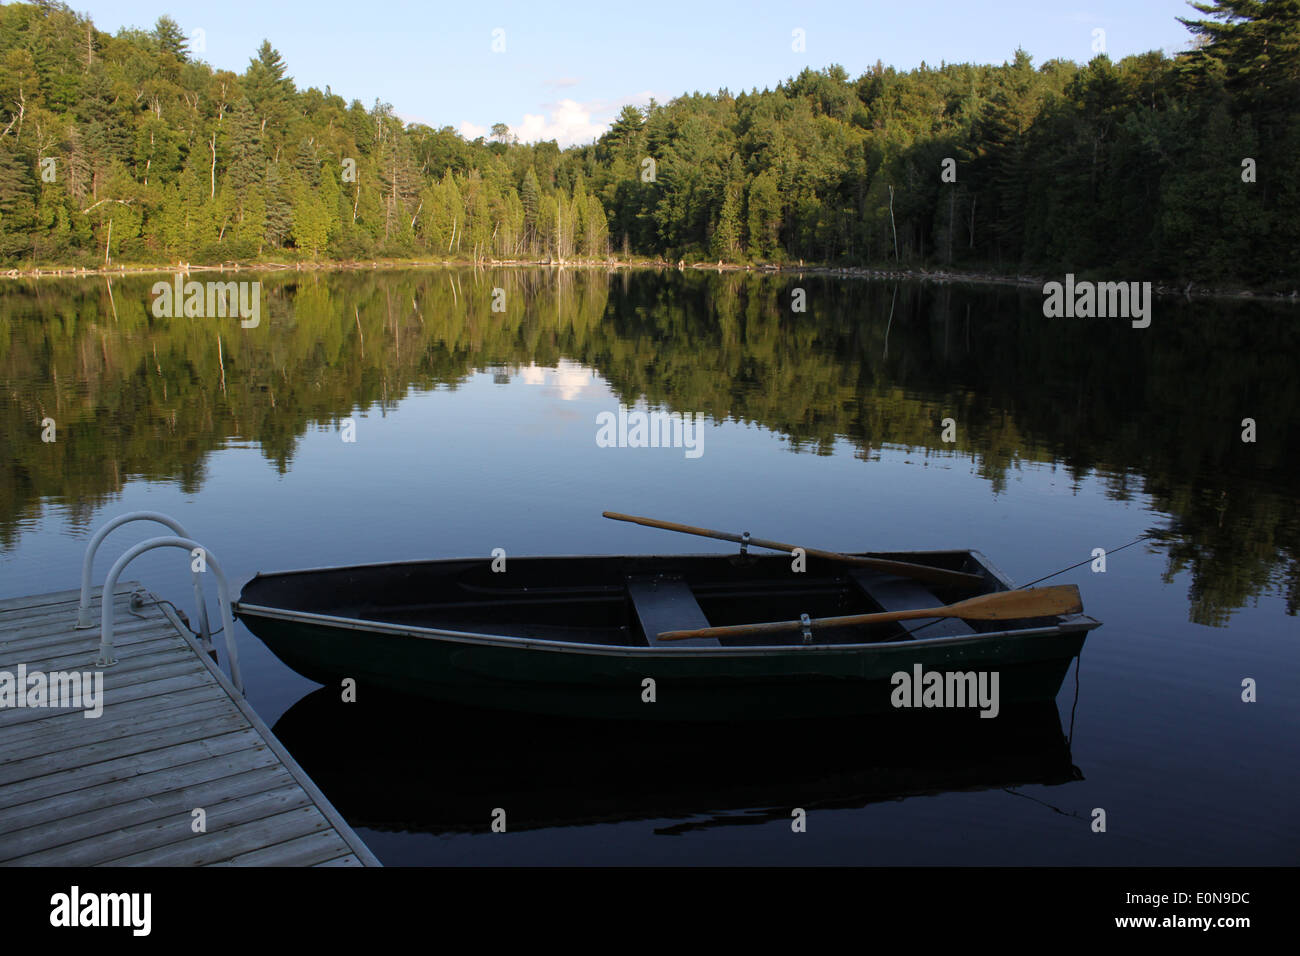 Docked row boat on a small lake in cottage country in Quebec, Canada - Stock Image